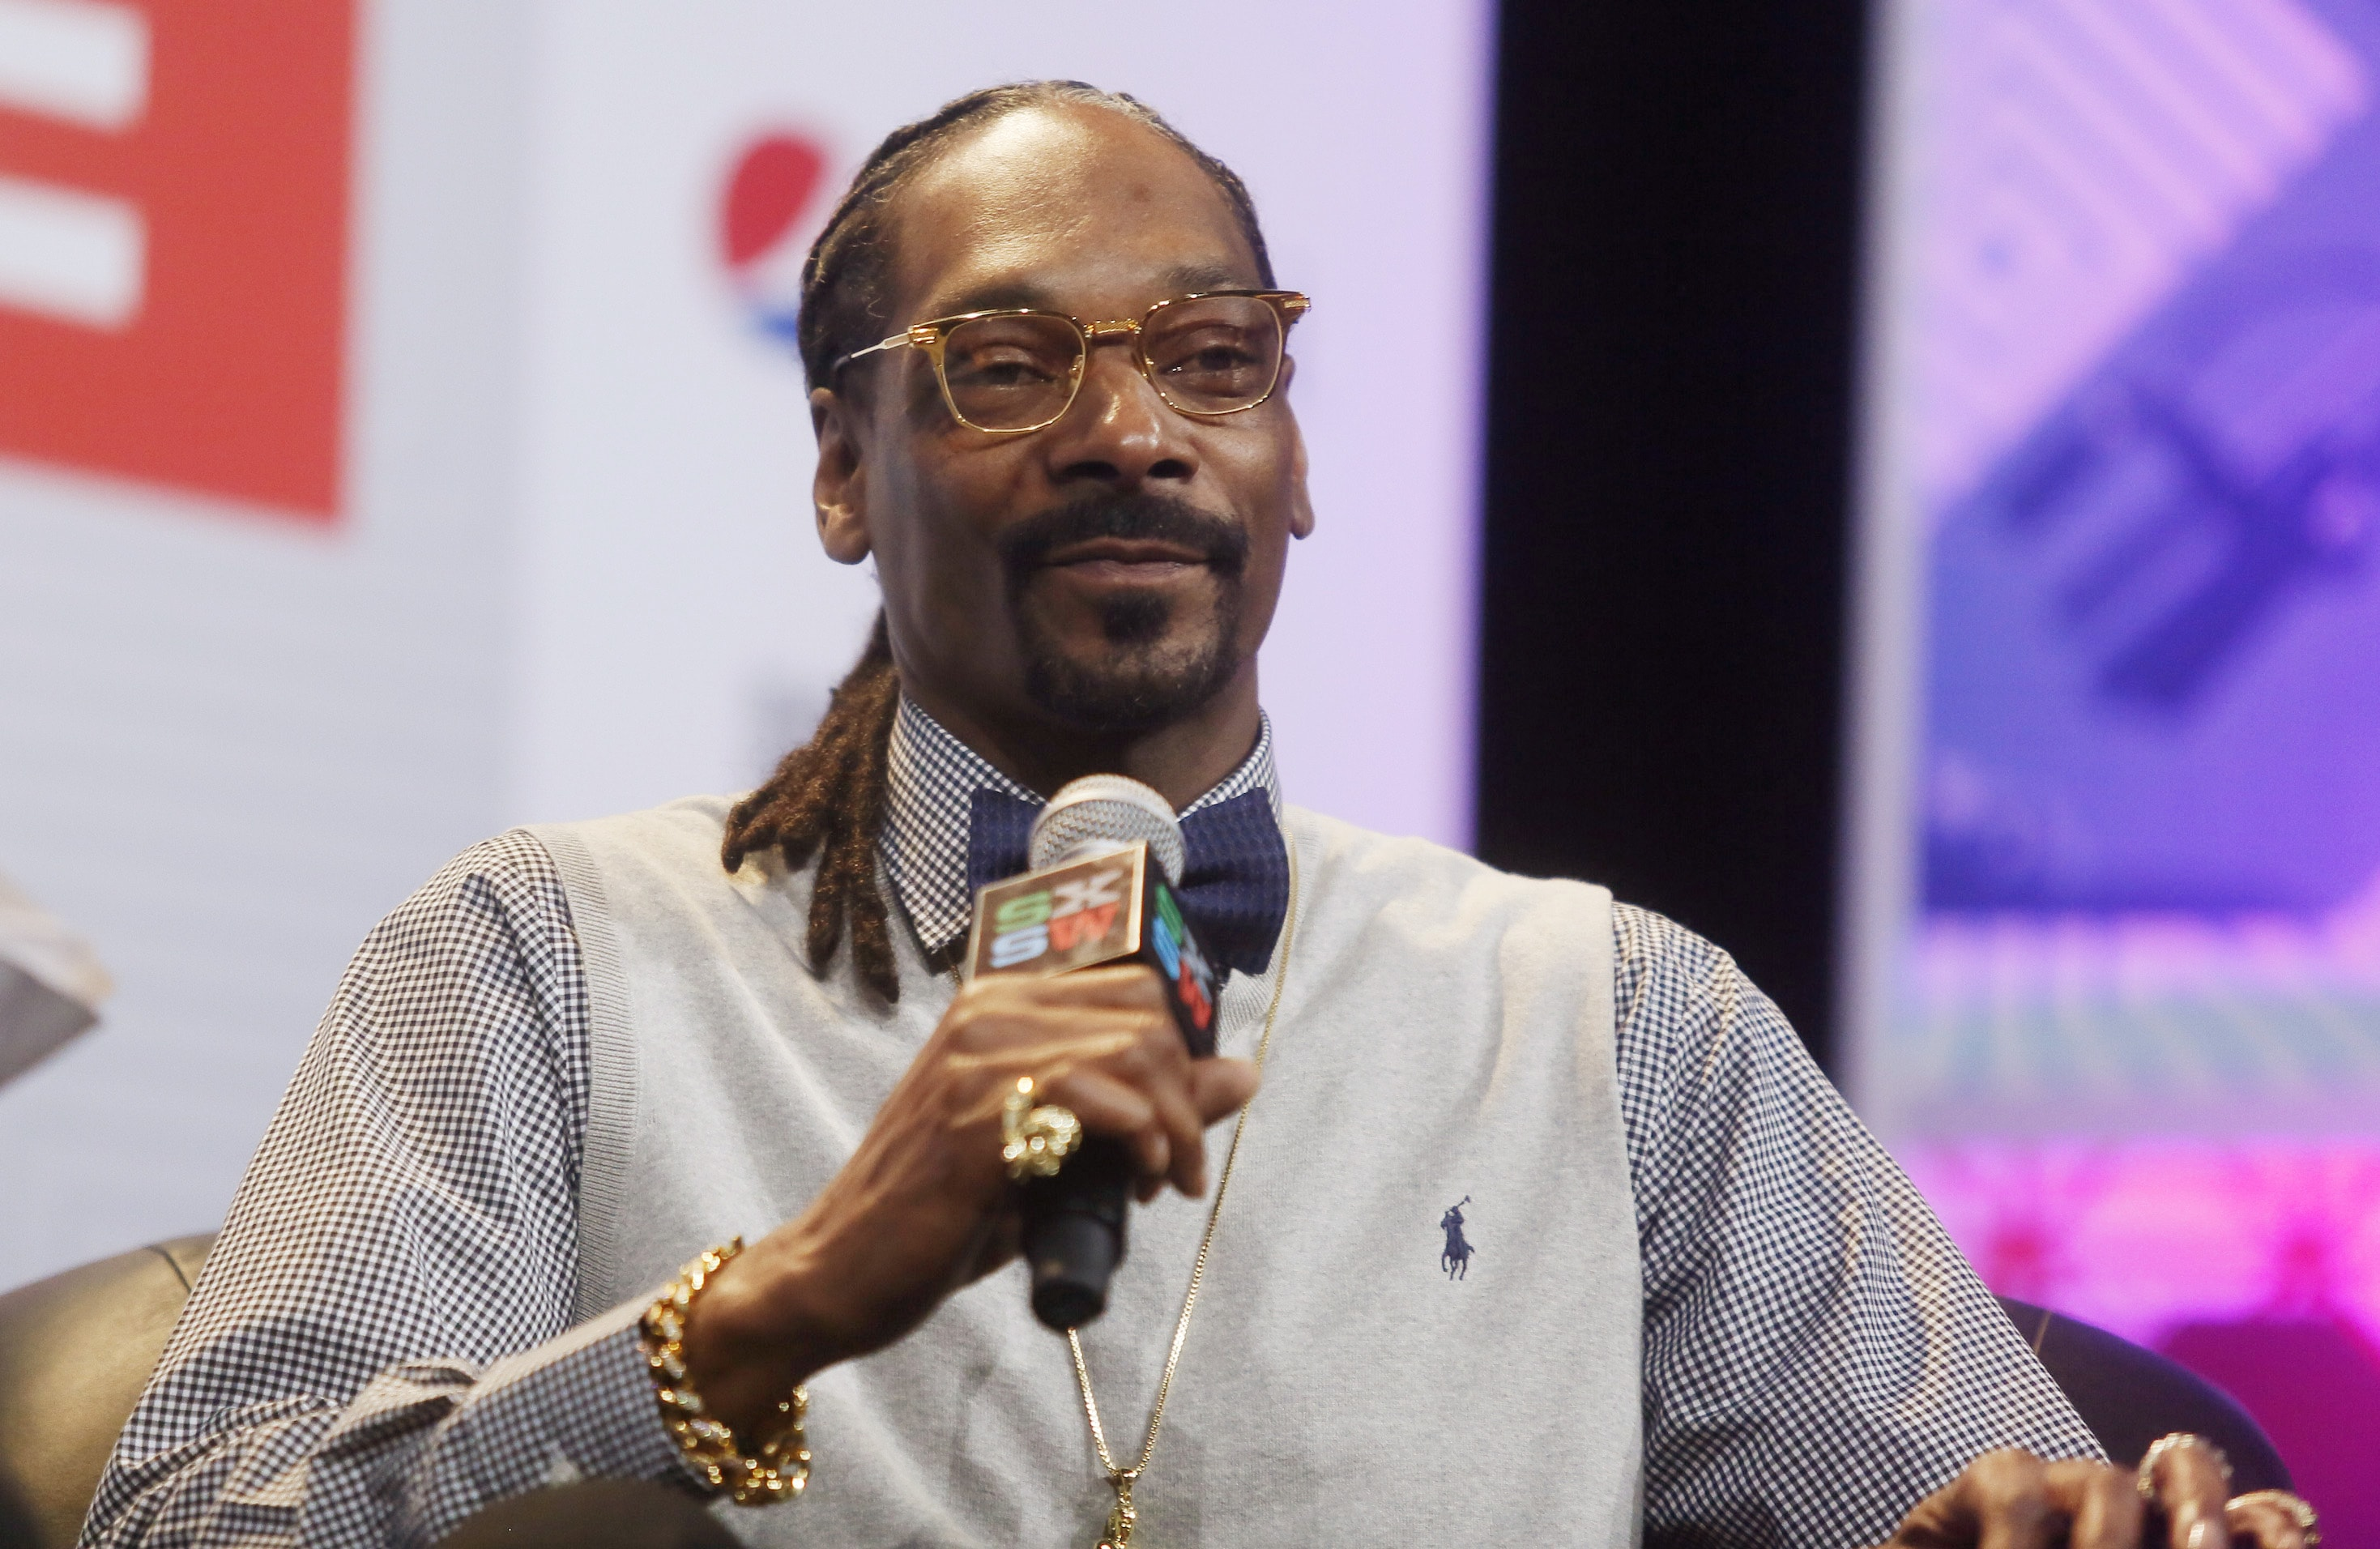 Snoop Dogg Wallpapers hd